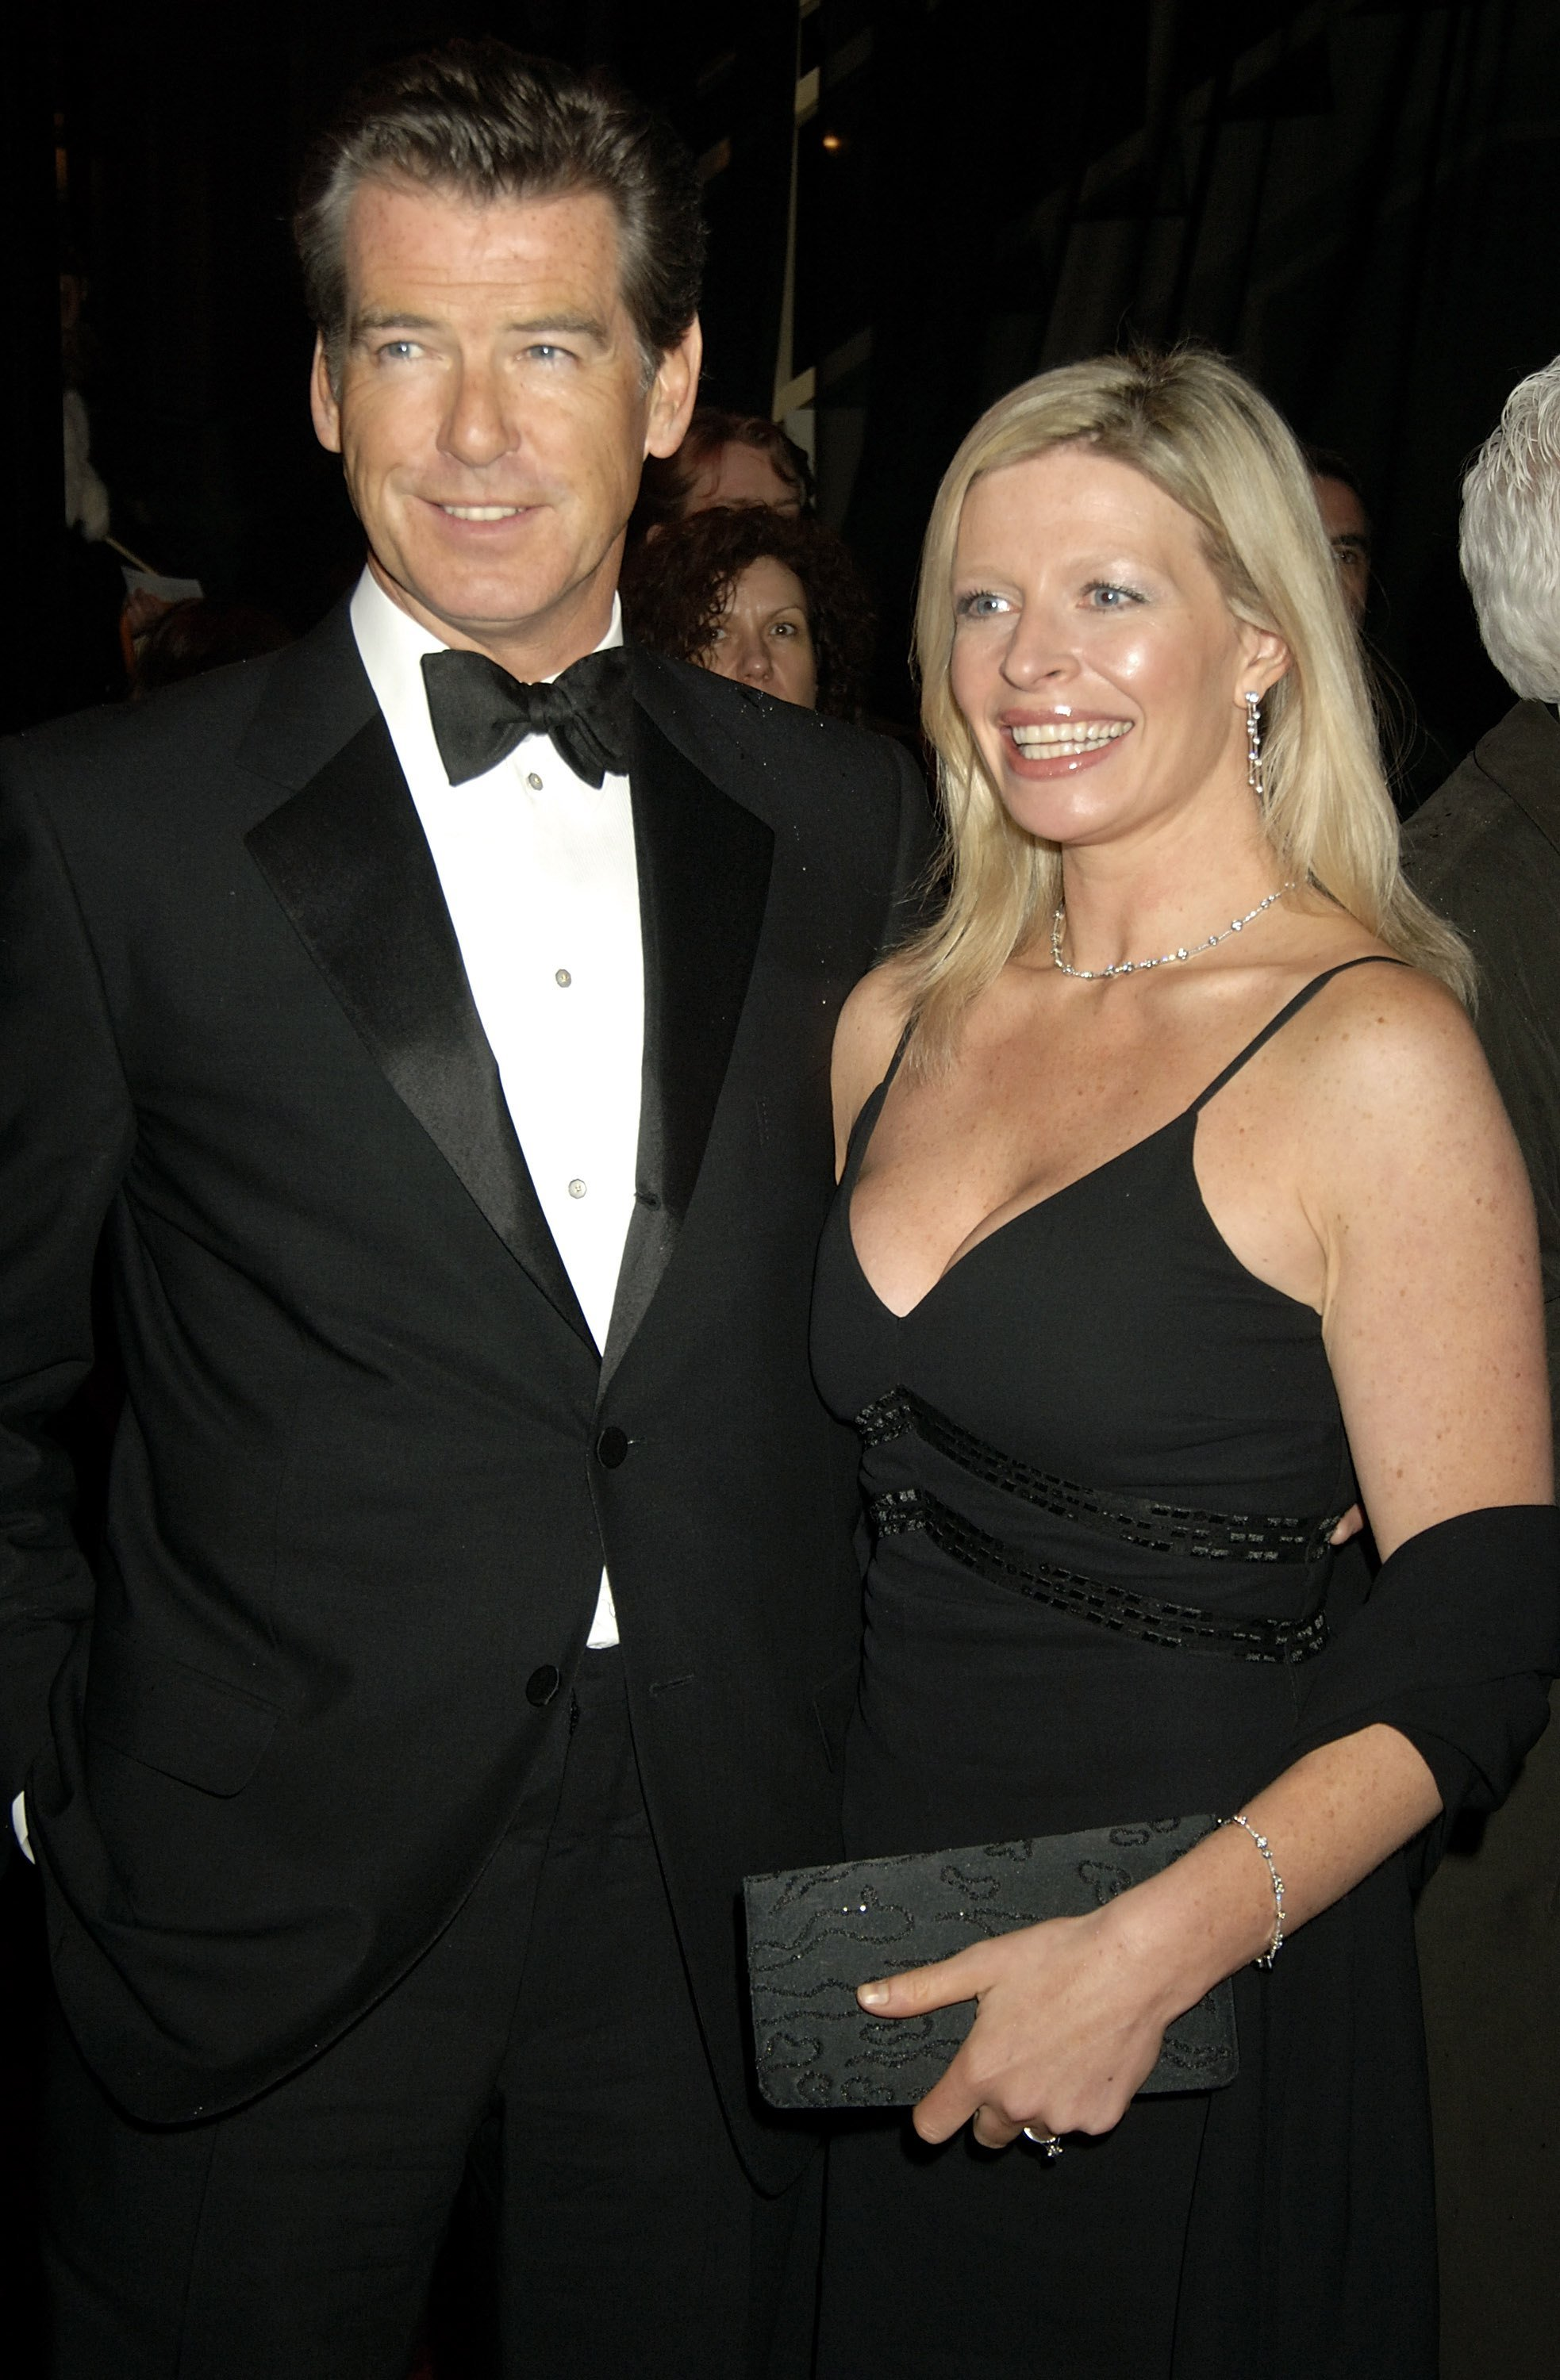 Image Source: Getty Images/Dave M. Benett | Pierce and Charlotte at the BAFTA after show in 2006